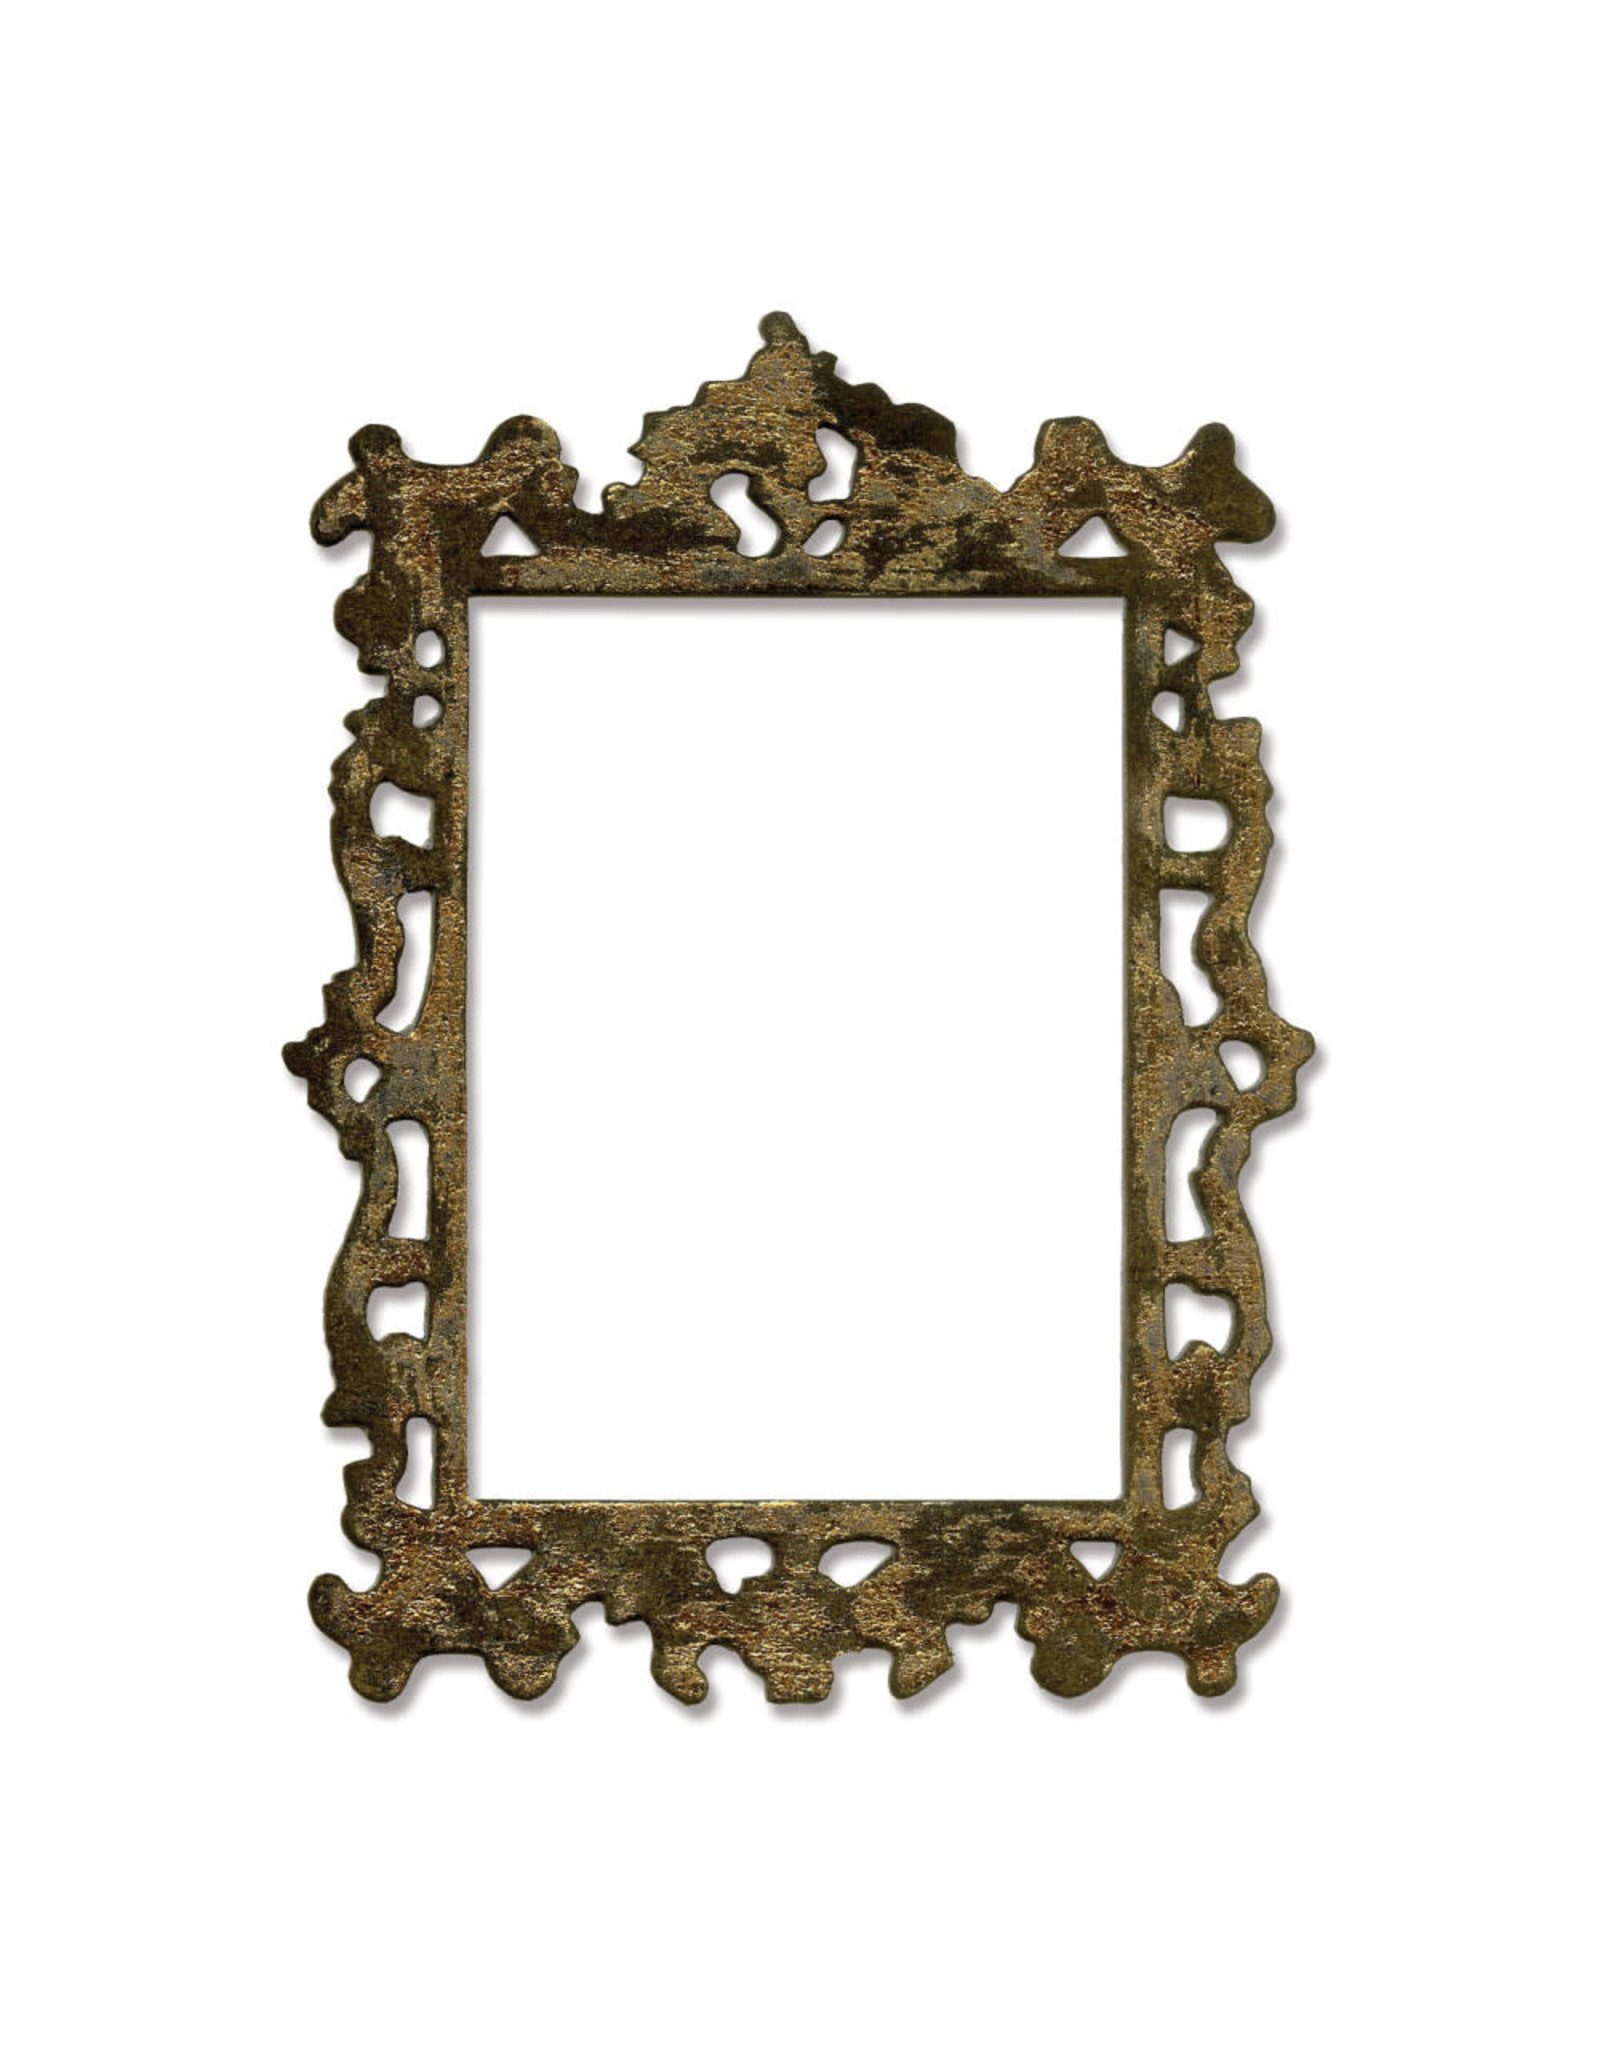 Ellison/Sizzix Ornate Frame #2 (Bigz) - Die (RETIRED) (25%)